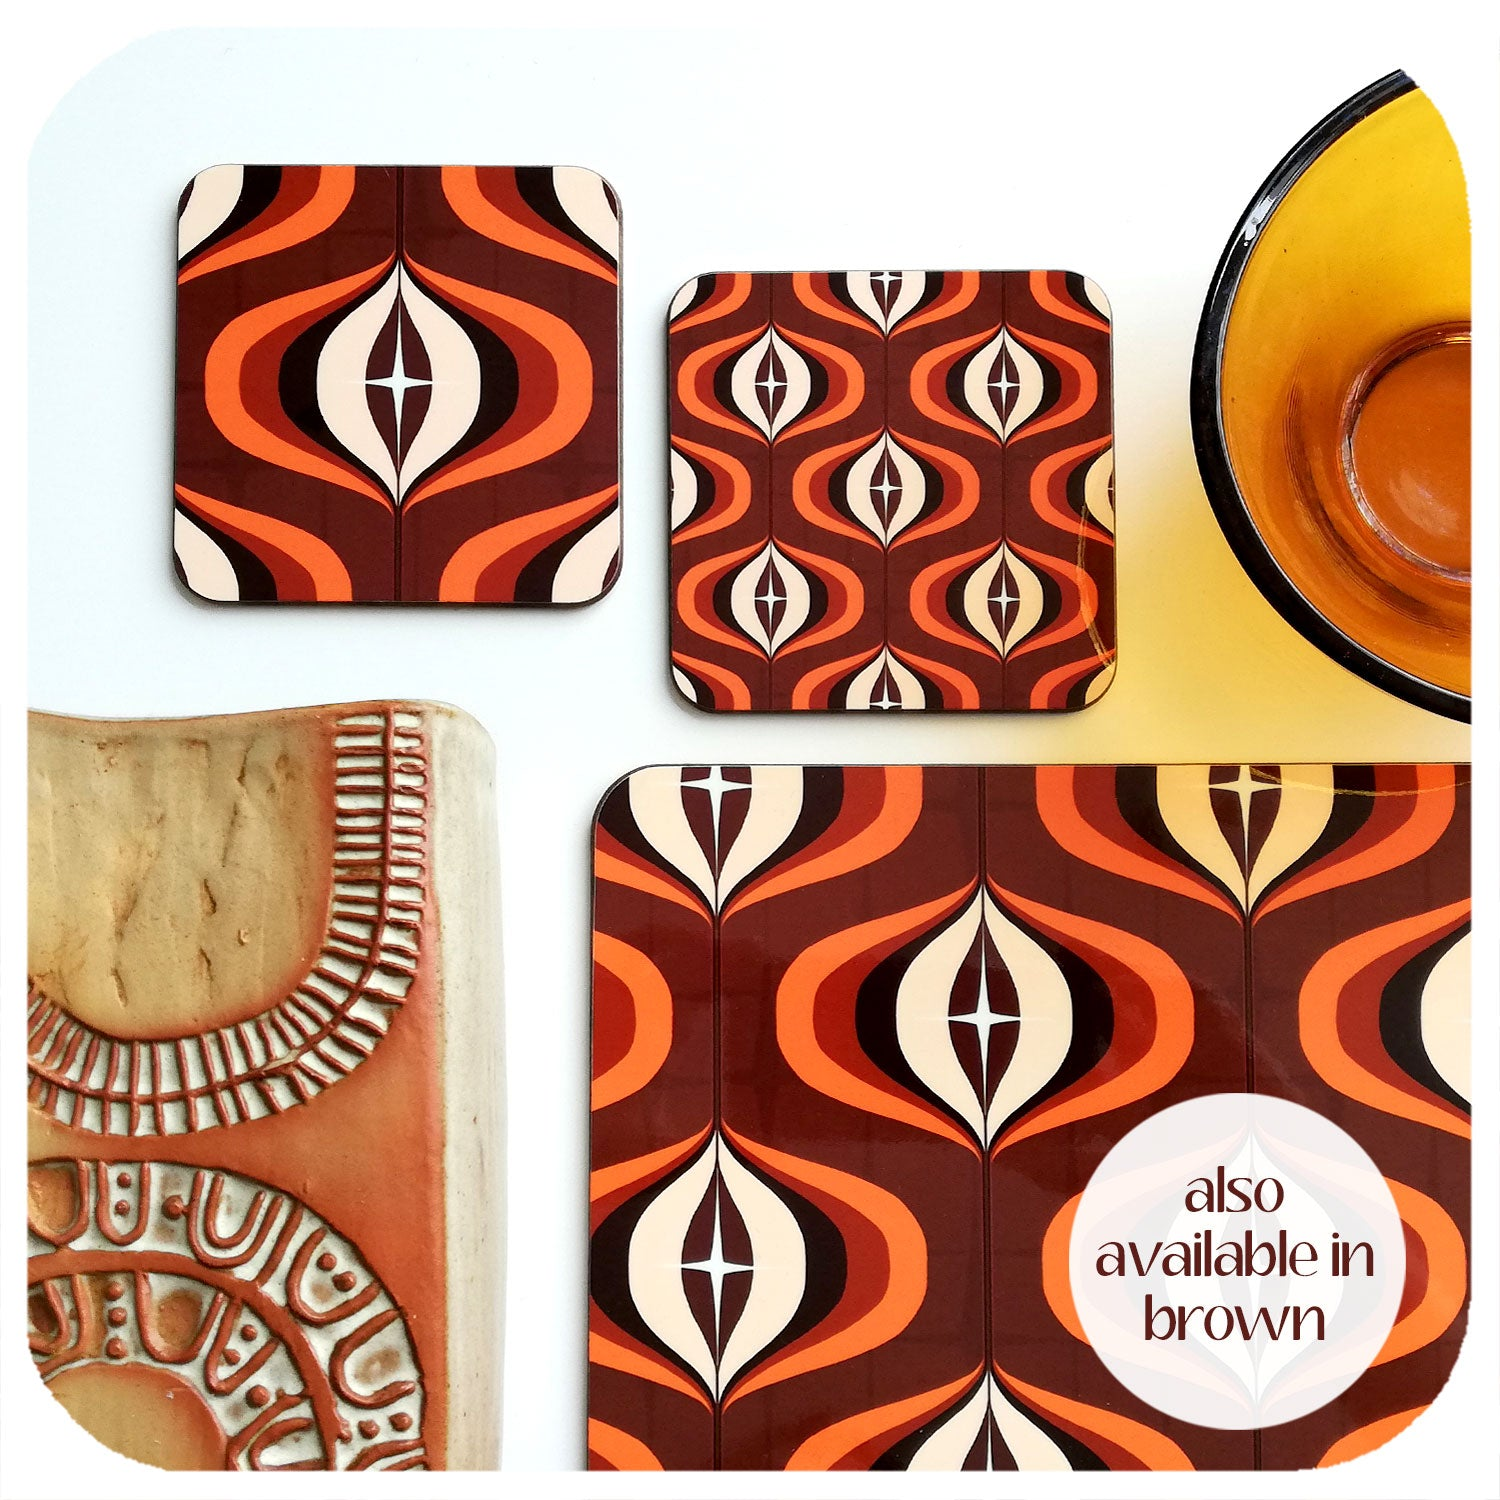 1970s Op Art Placemats and coasters also available in orange | The Inkabilly Emporium